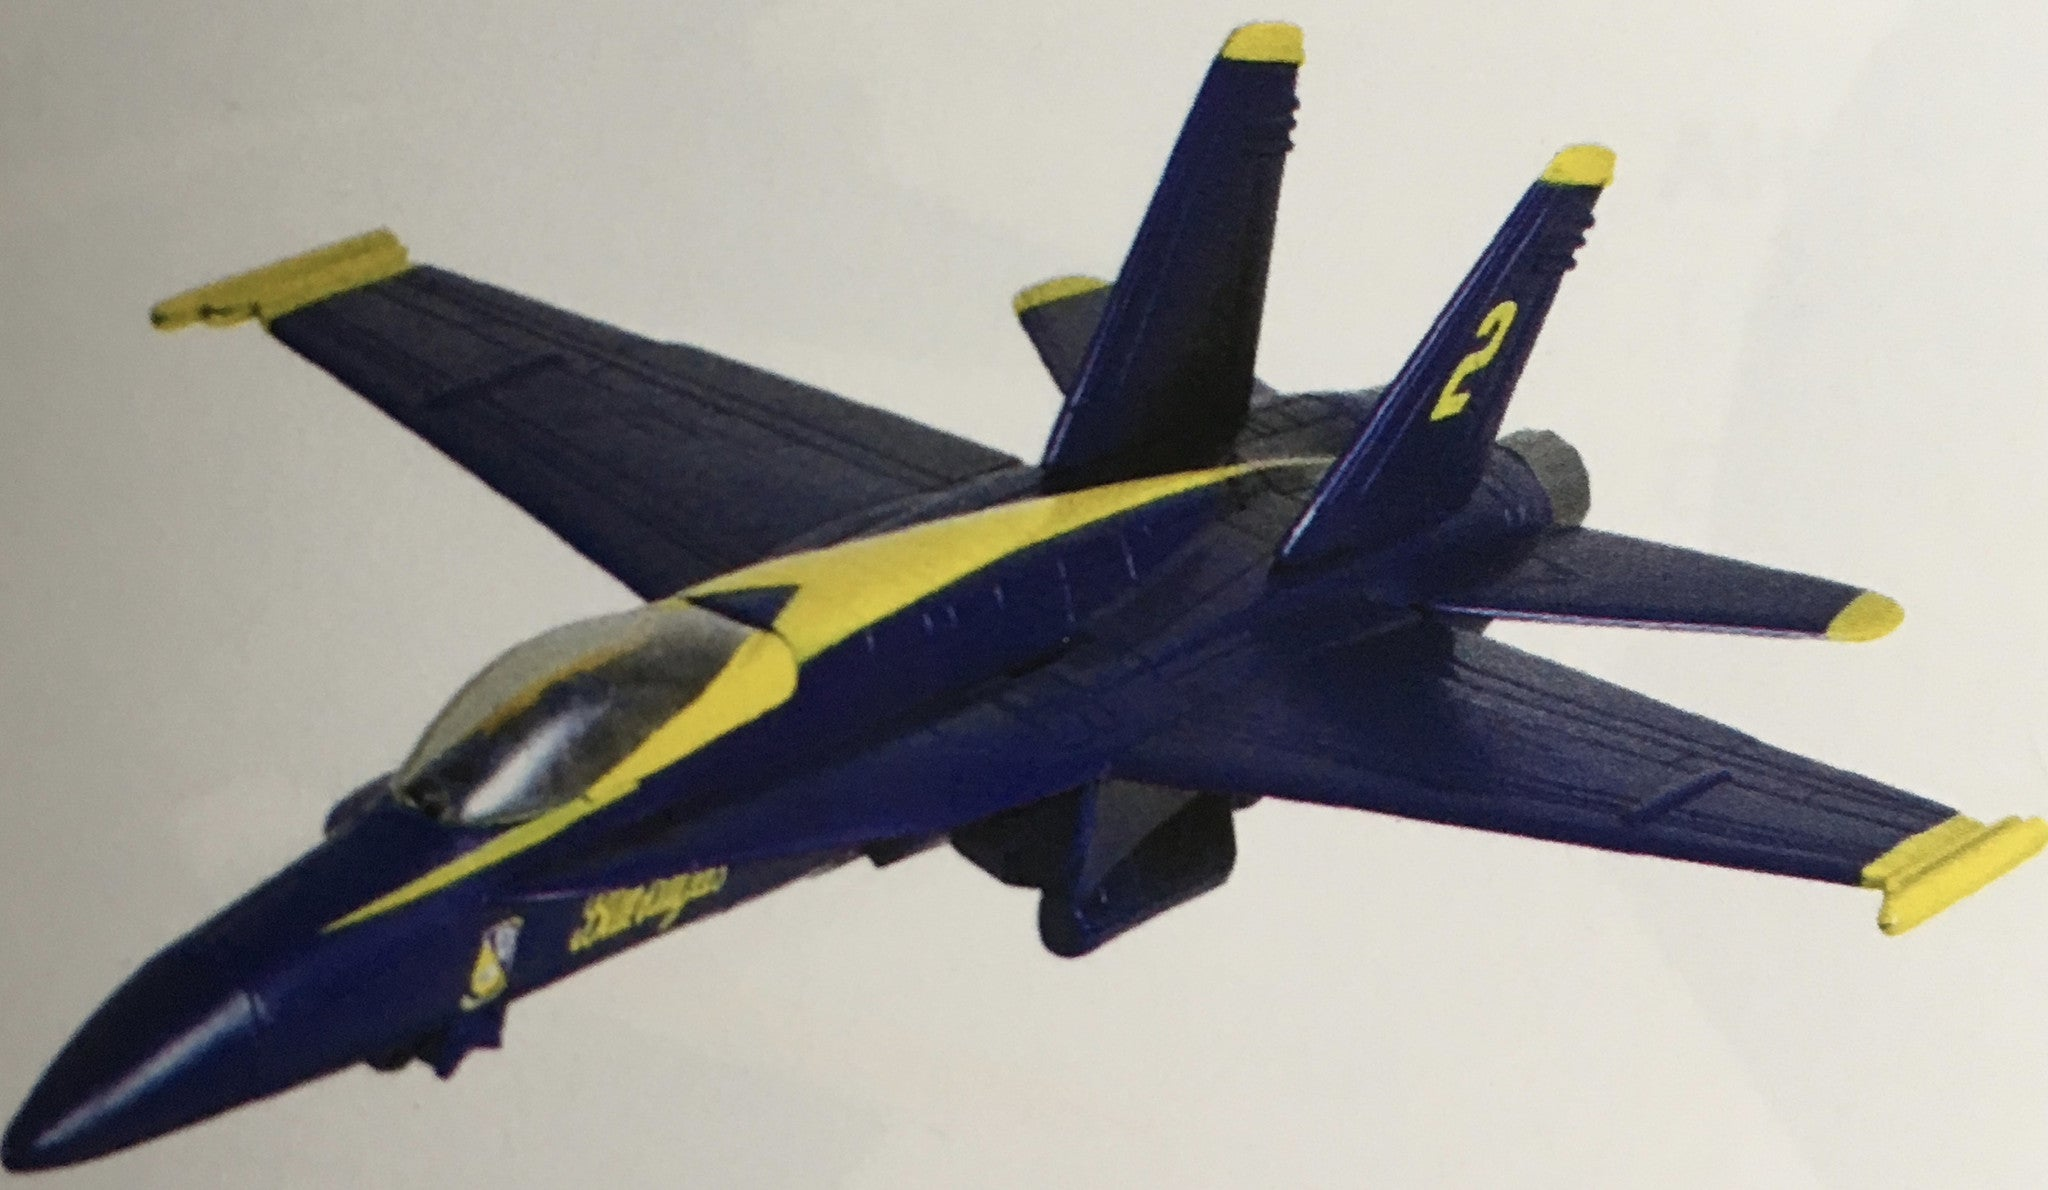 EZ Build F-18 Blue Angel Hornet